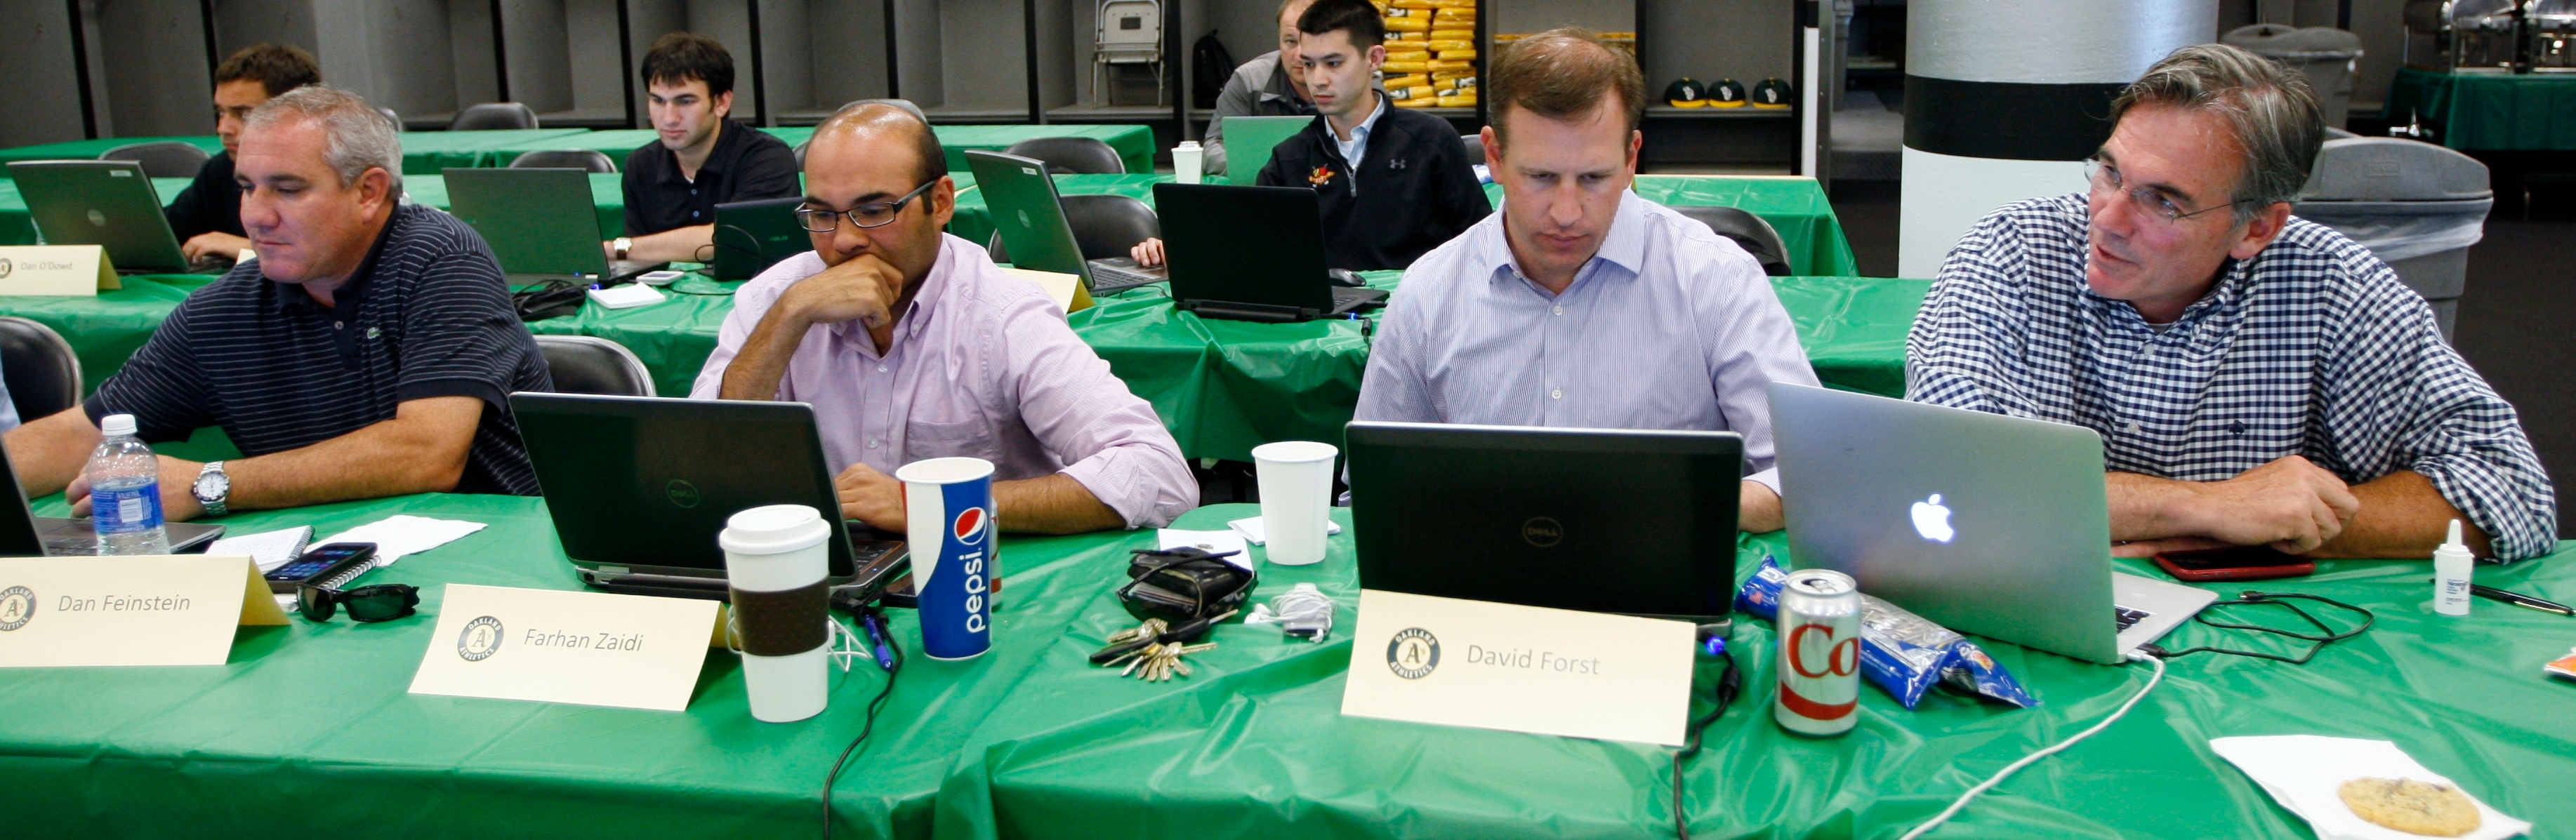 Scouting director Dan Feinstein, left, is part of the Oakland Athletics brain trust at the Major League Baseball draft along with GM Billy Beane, right, the architect of the Moneyball philosophy, June 2014. (Michael Zagaris)